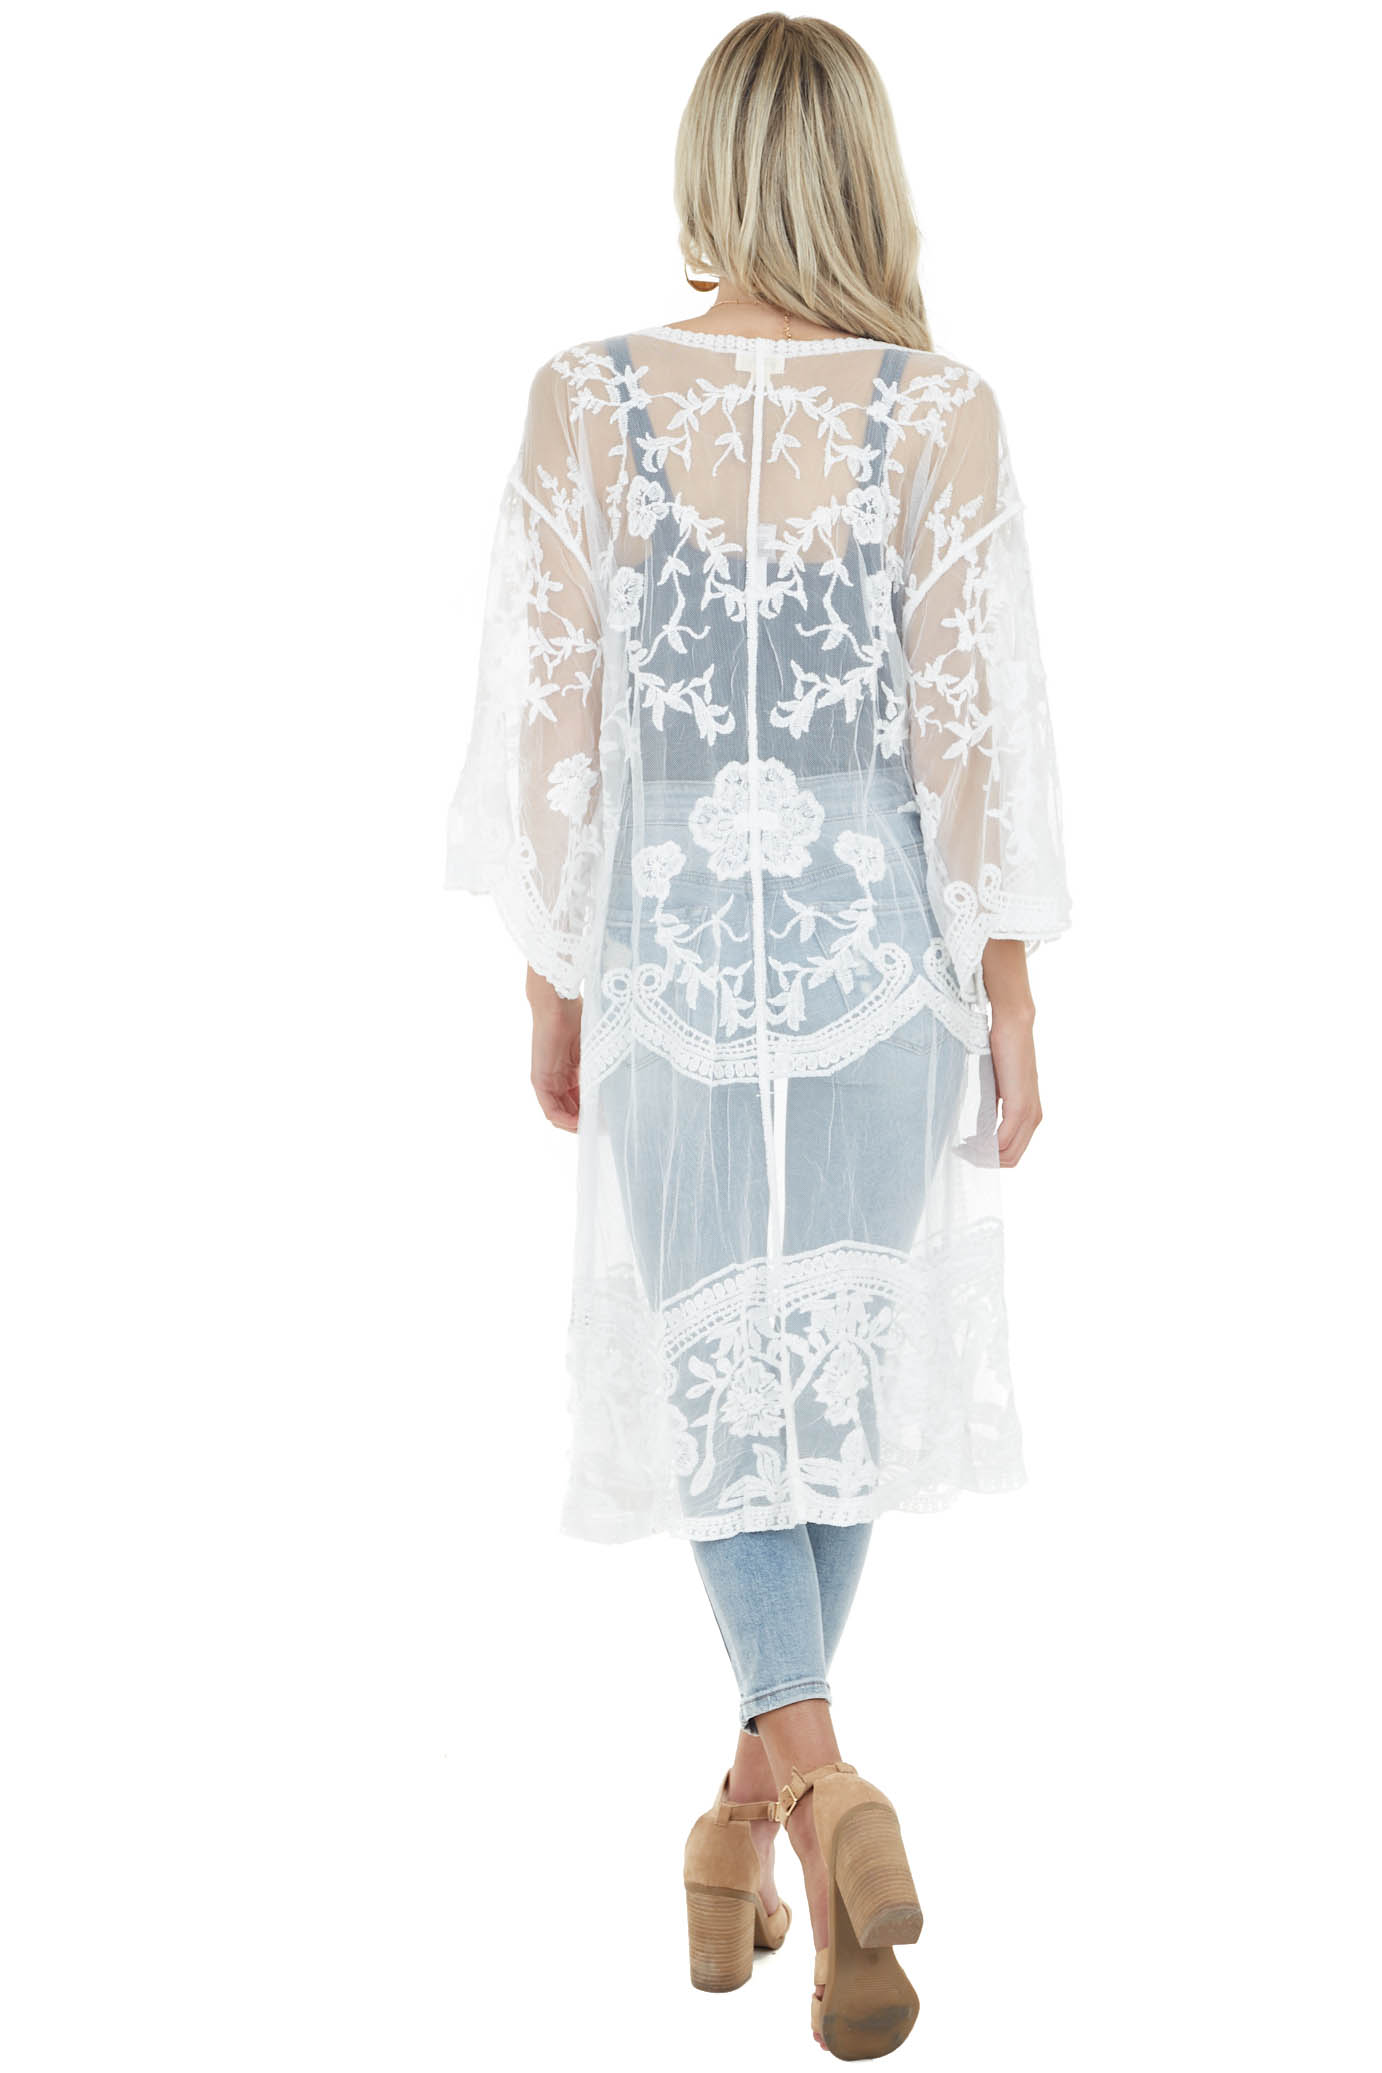 Off White Crochet Knit Floral Kimono with Short Sleeves